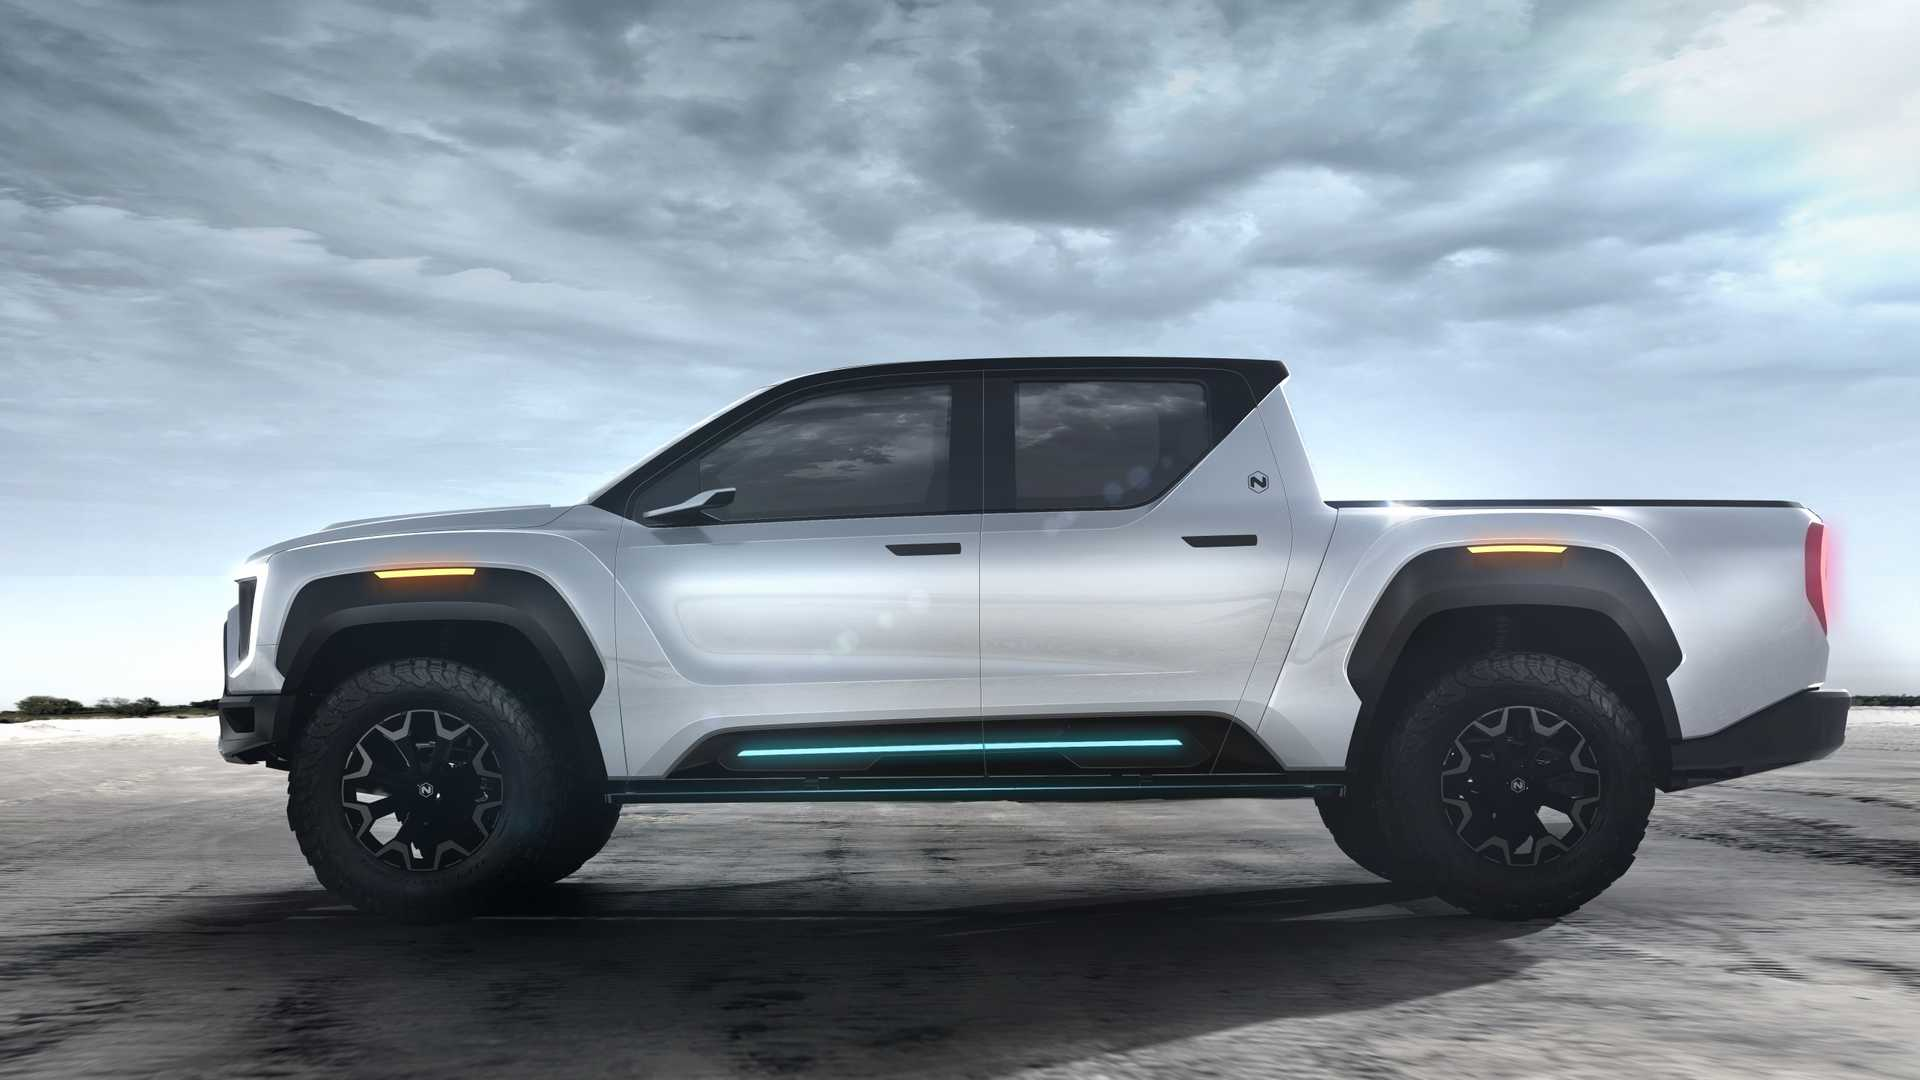 nikola-badger-electric-pickup-truck-1